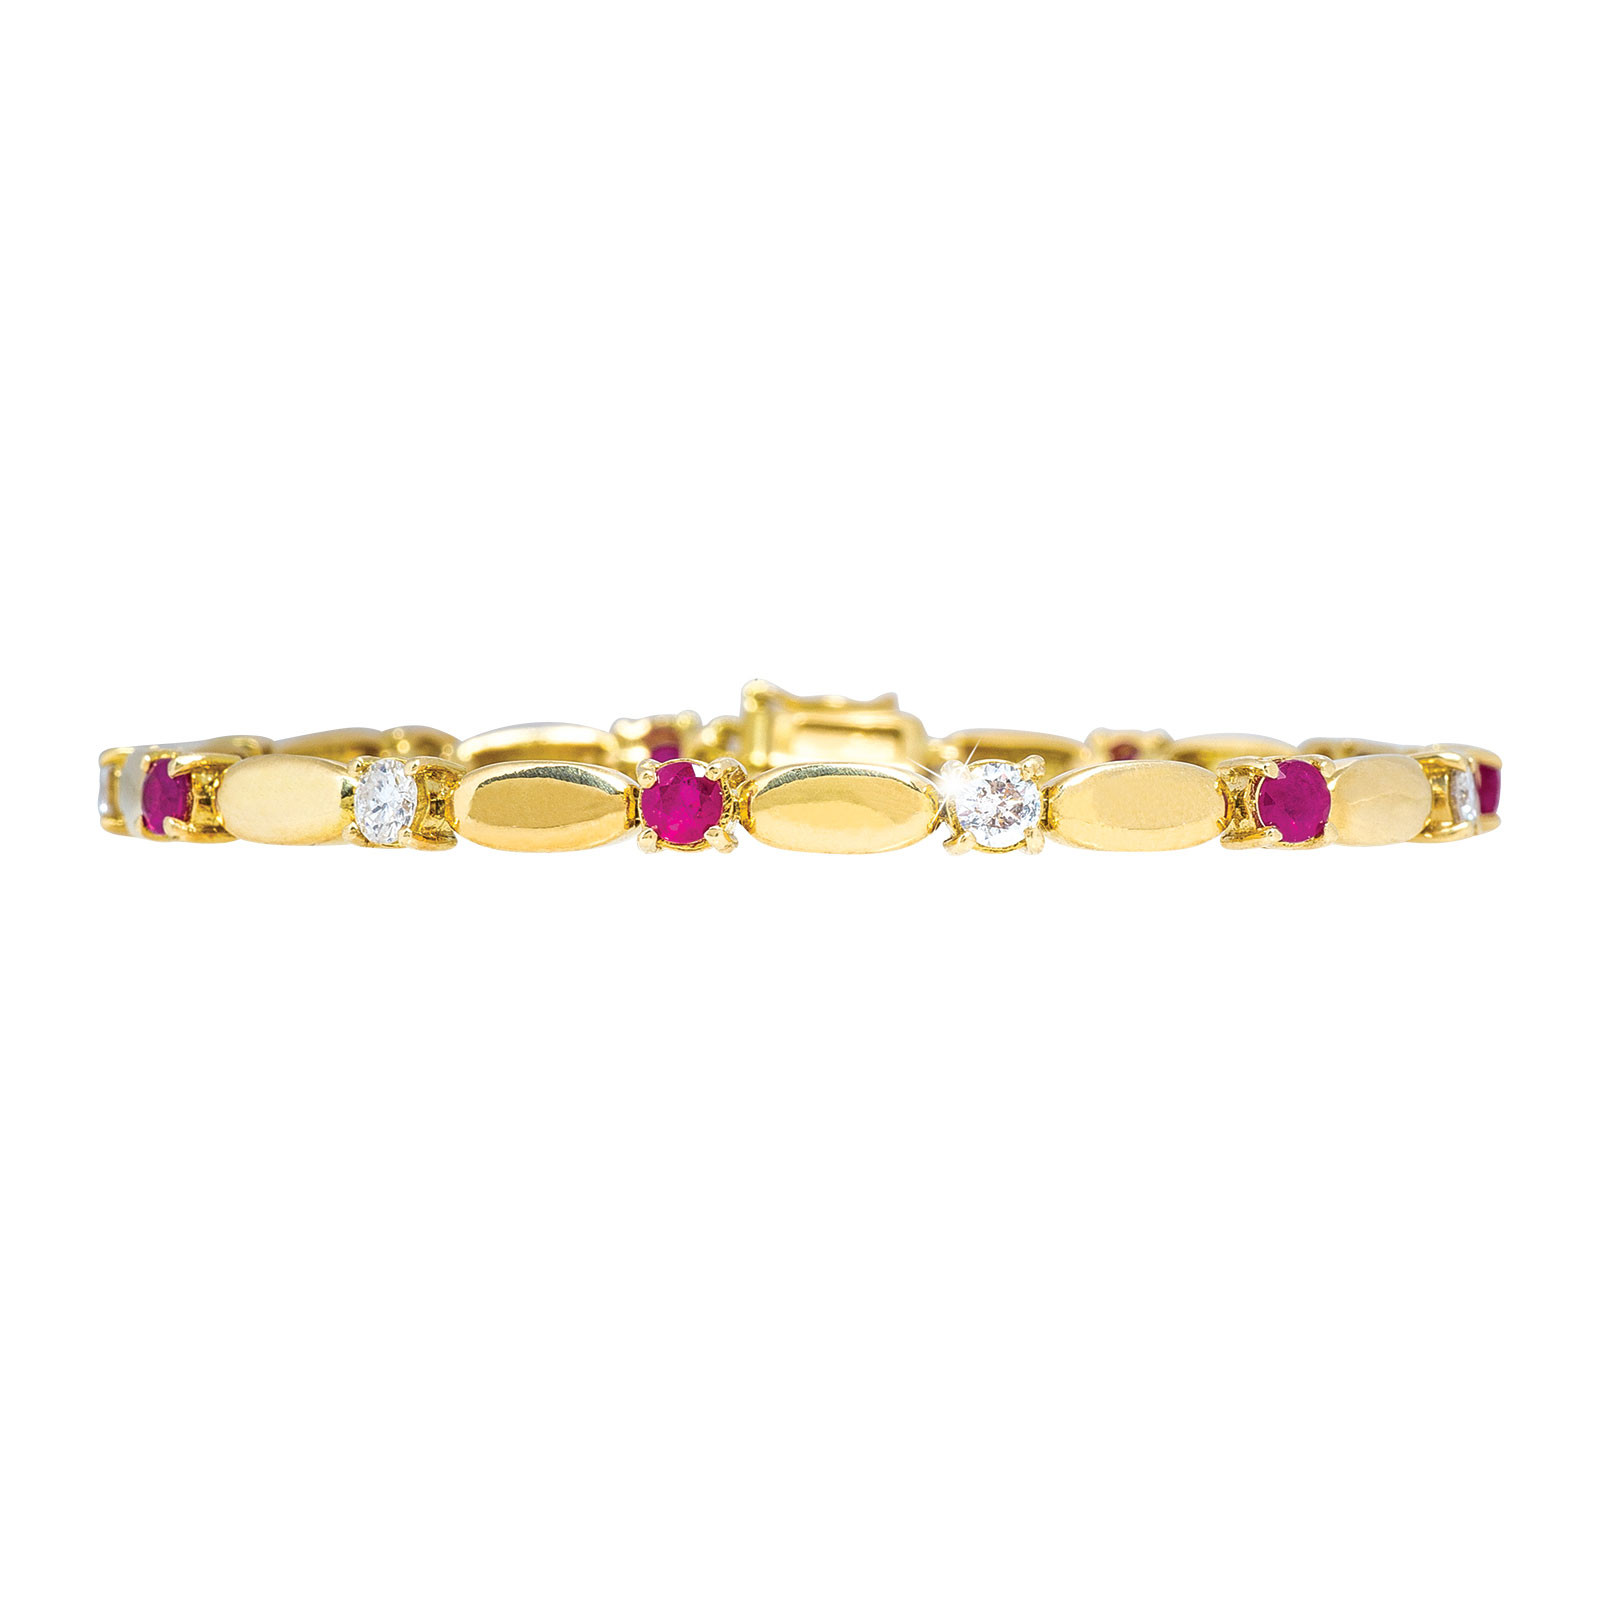 Vintage 1.02 CTW Diamond & Ruby Tennis Bracelet